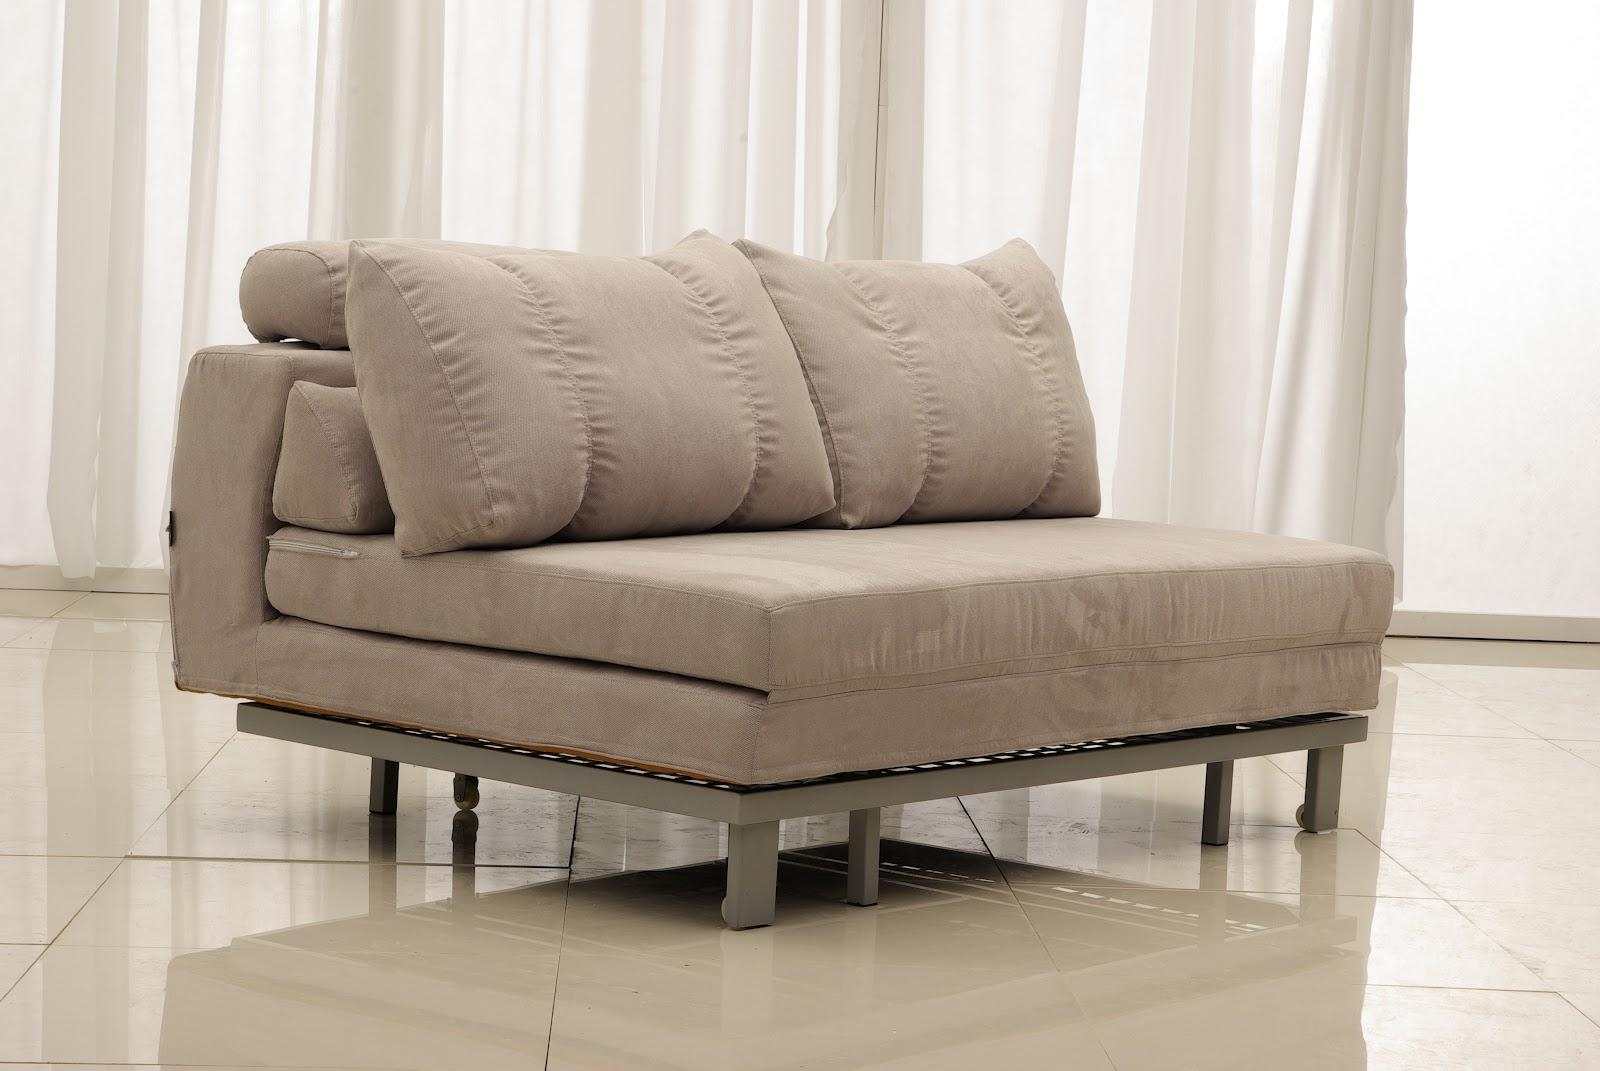 Beautiful Most Comfortable Sleeper Sofa 2017 80 With Additional For Sleeper Sofas San Diego (View 8 of 20)